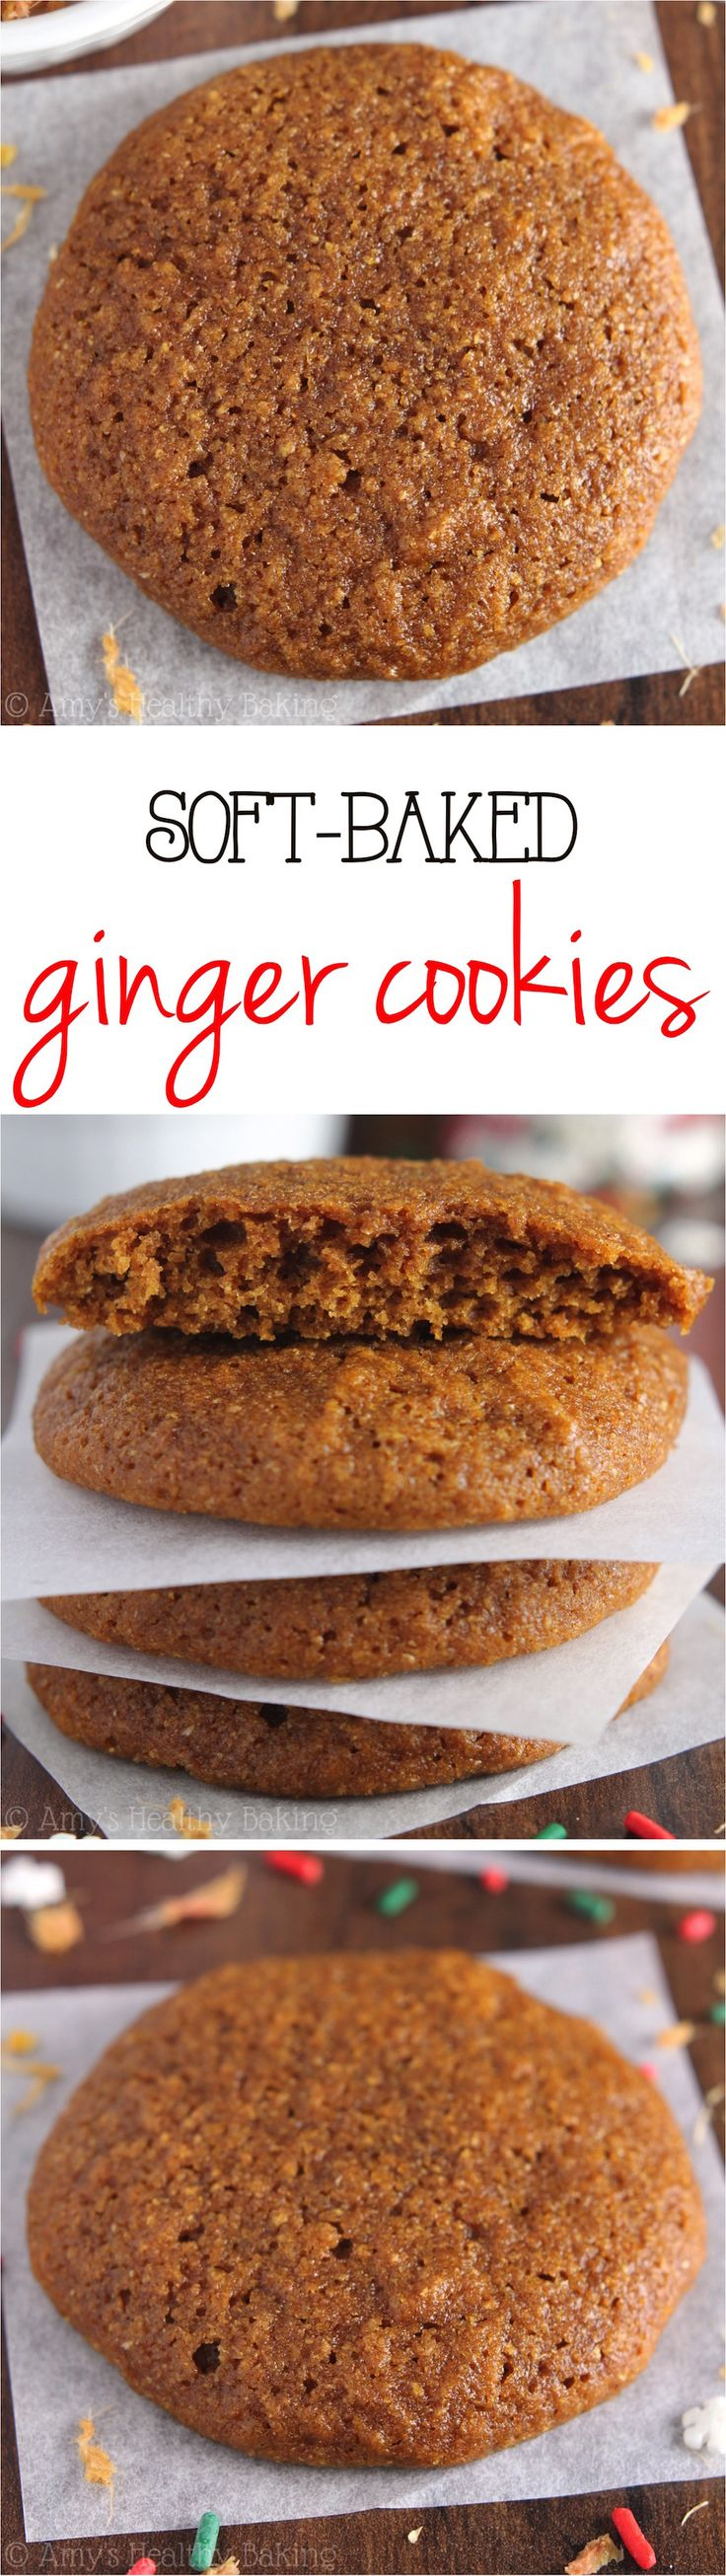 These Soft-Baked Ginger Cookies are the chewiest you'll ever make! Made with NO refined flour or sugar, but they don't taste healthy at all!